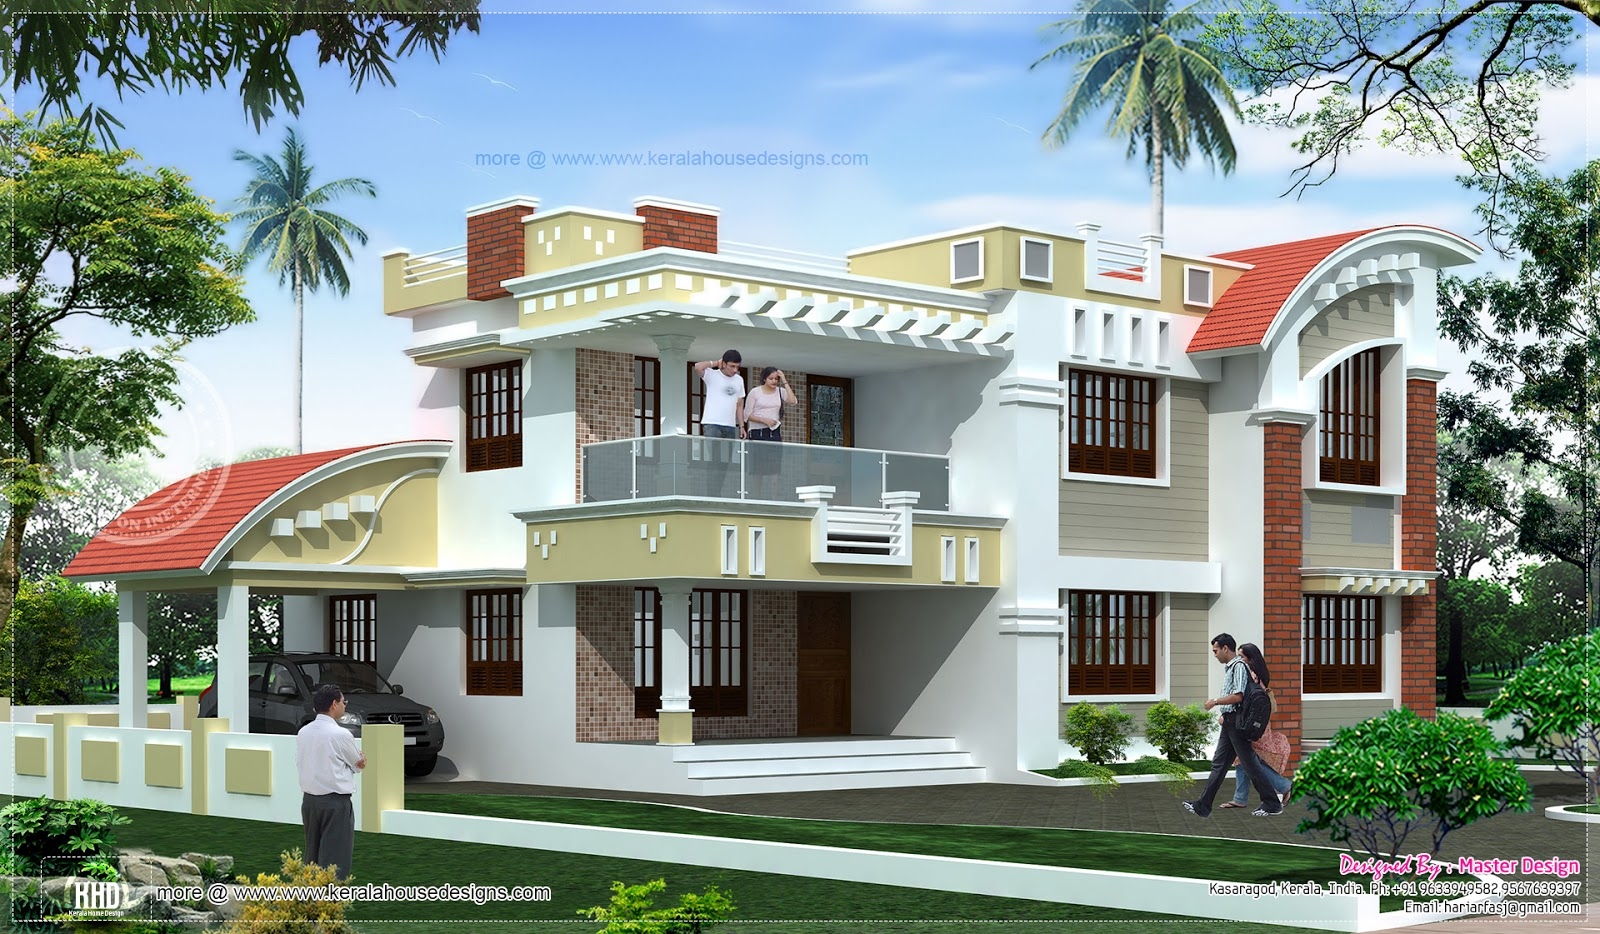 a mixed style kerala villa elevation with curved roofs indianhomemakeover